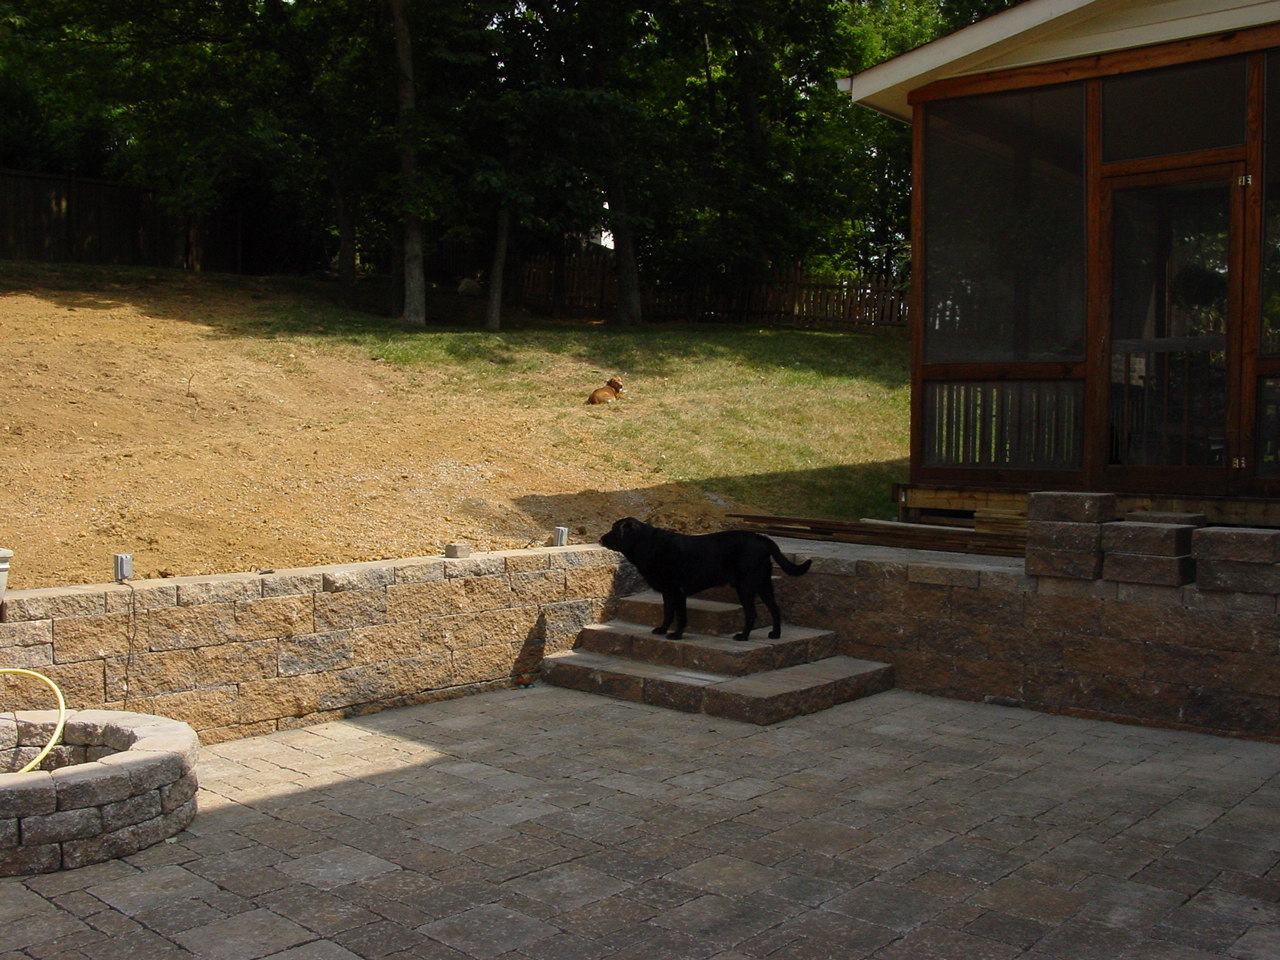 Retaining Wall Backyard Slope : about relandscaping my backyard (building a retaining wall on sloped